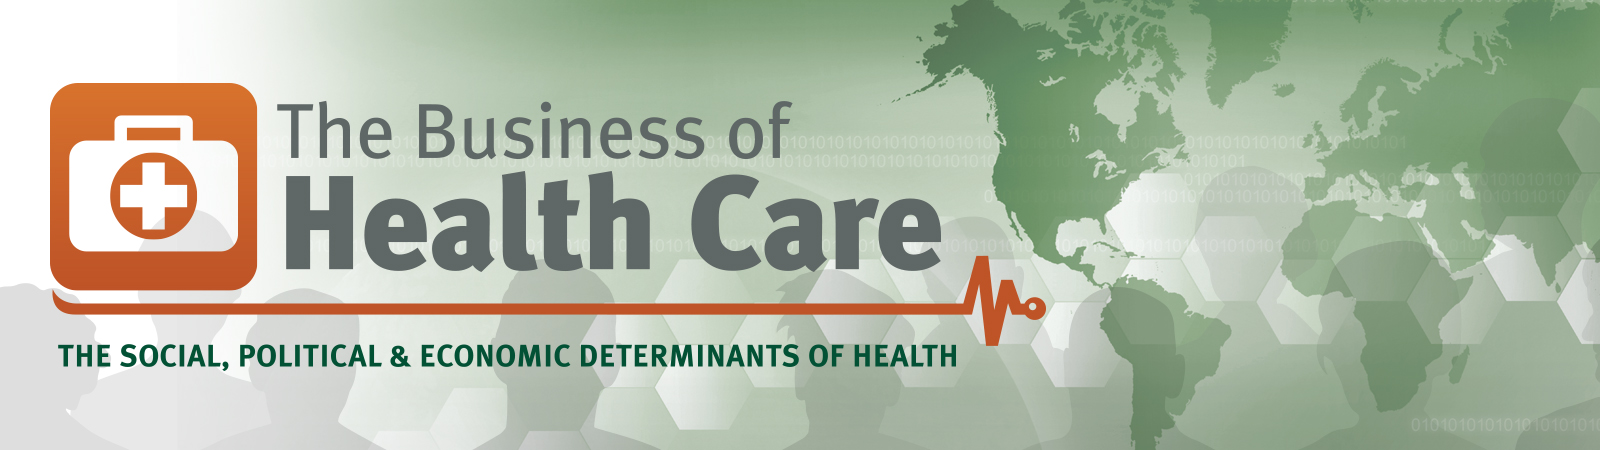 The Business of Health Care